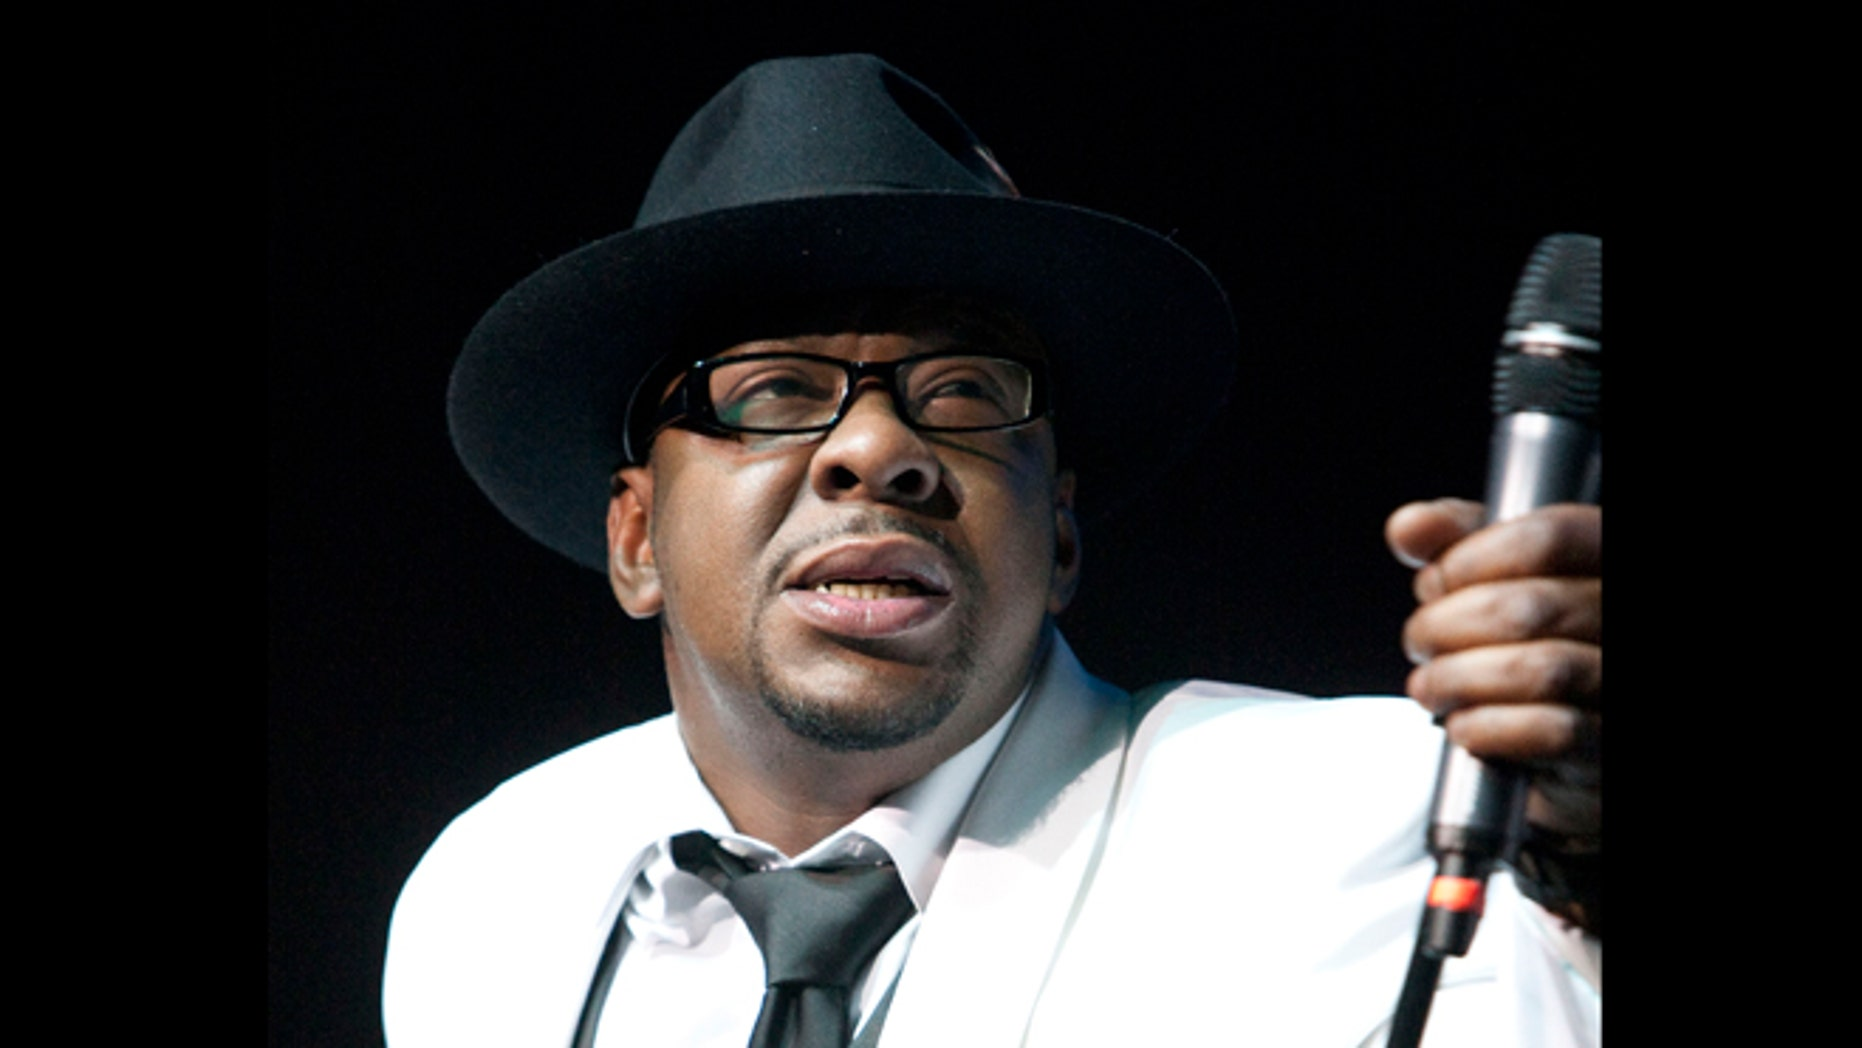 Feb. 18, 2012: File photo, singer Bobby Brown, former husband of the late Whitney Houston performs with New Edition at Mohegan Sun Casino in Uncasville, Conn. A judge sentenced Brown to 55 days in a Los Angelesjail Tuesday, Feb. 26, 2013 after the singer pleaded no contest to a drunken driving charge and driving on a suspended license.